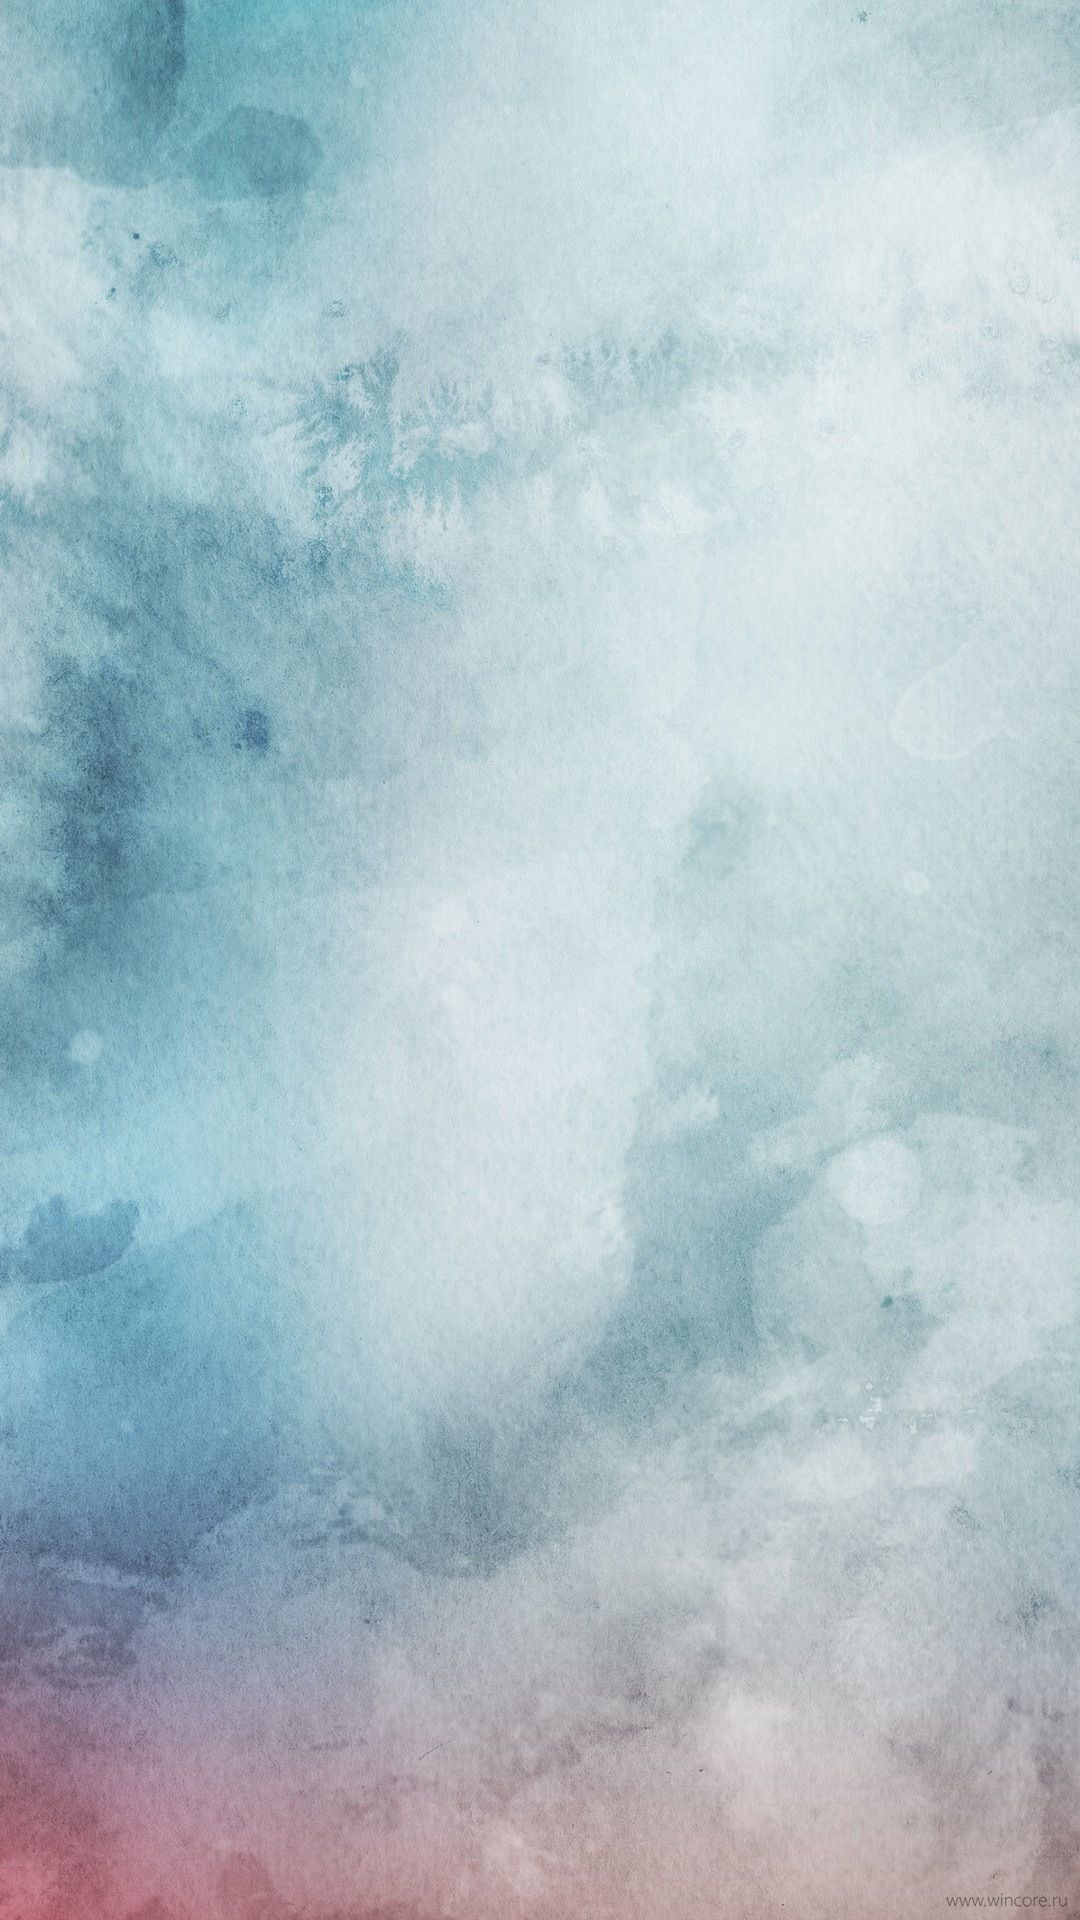 Watercolor Texture Wallpapers For Smartphones, Tablets And Pcs